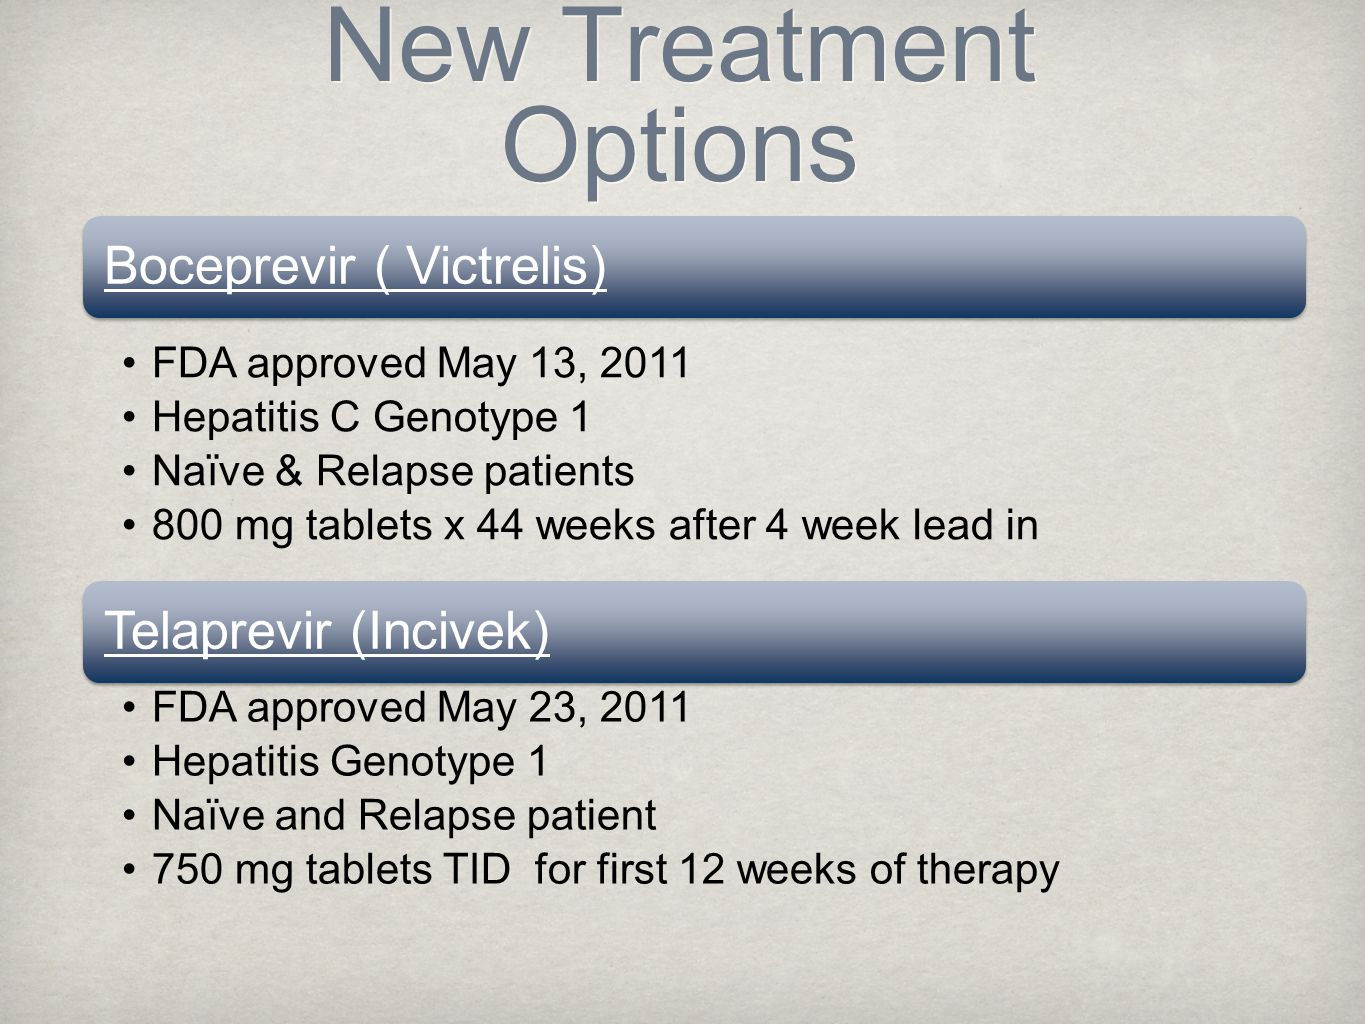 New Treatment Options Boceprevir ( Victrelis) FDA approved May 13, 2011 Hepatitis C Genotype 1 Naïve & Relapse patients 800 mg tablets x 44 weeks after 4 week lead in Telaprevir (Incivek) FDA approved May 23, 2011 Hepatitis Genotype 1 Naïve and Relapse patient 750 mg tablets TID for first 12 weeks of therapy